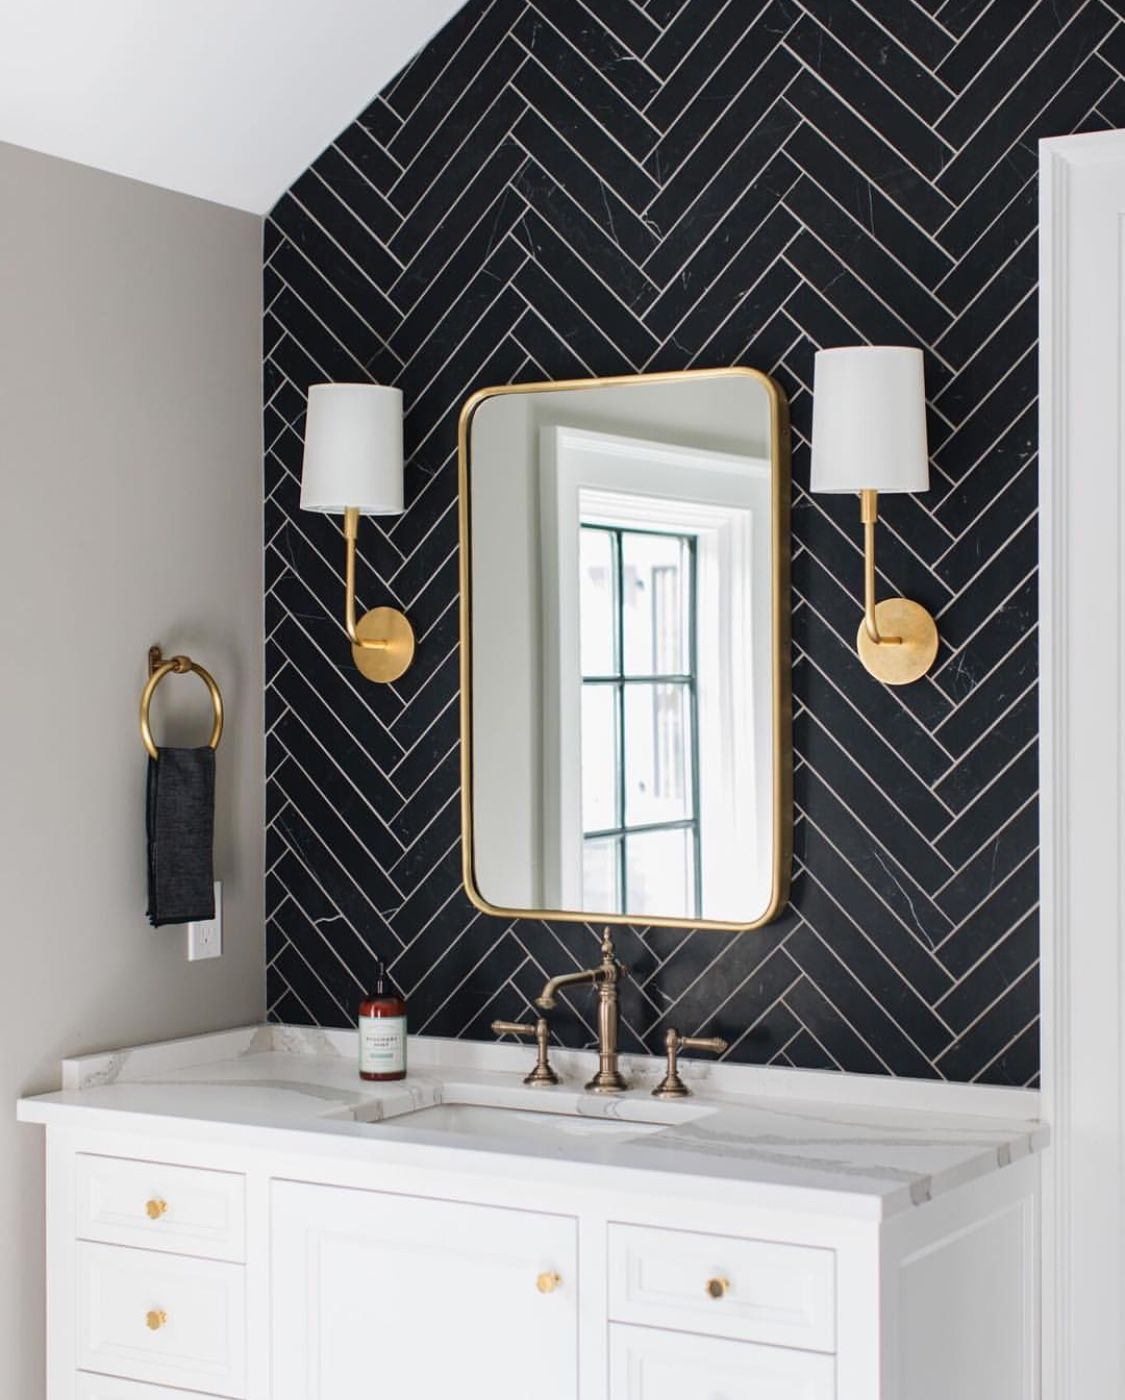 Small Bathroomdesign Ideas: Removable Wallpaper Or Peel And Stick Tile On One Wall